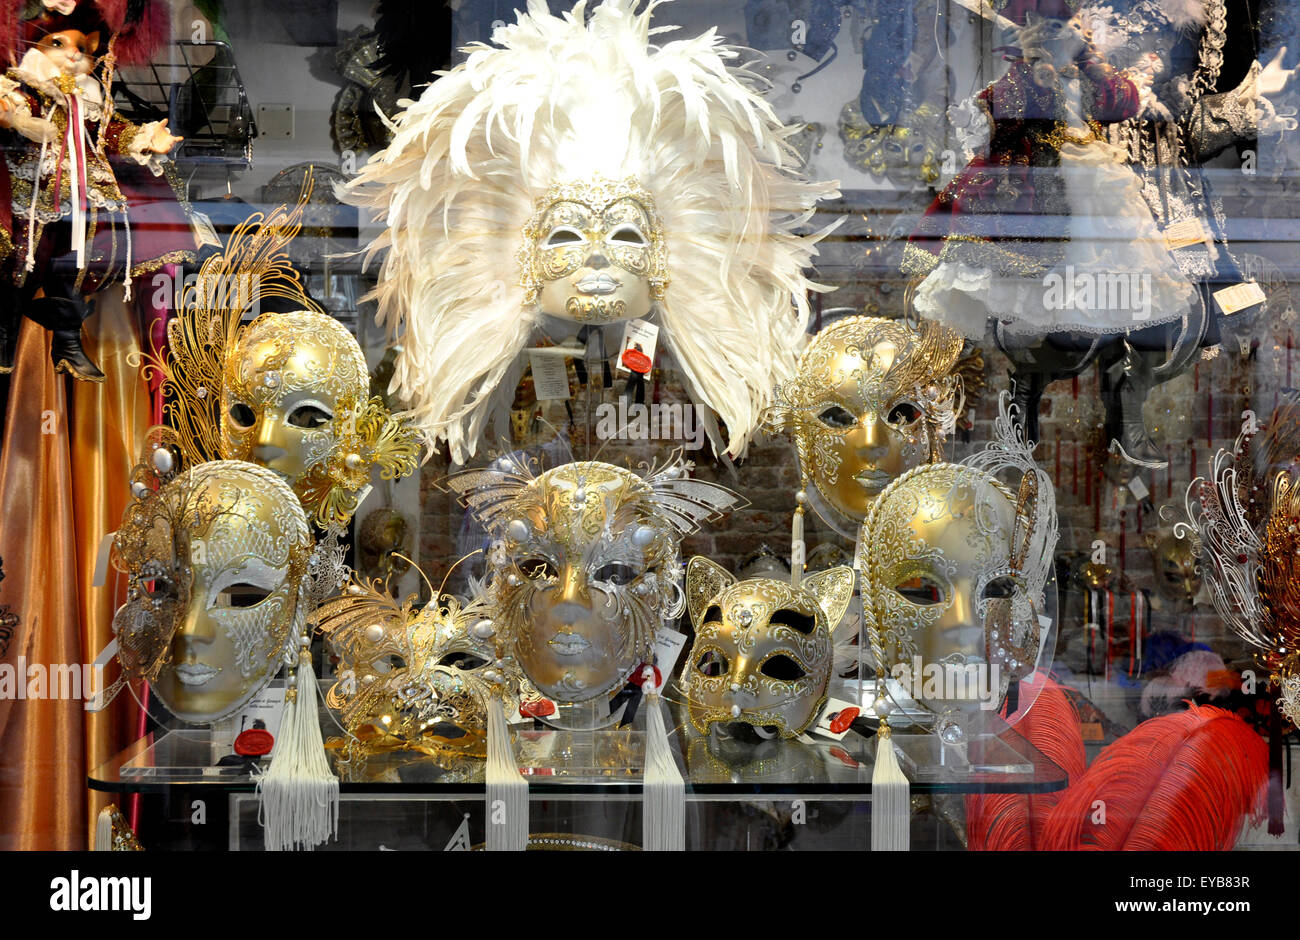 Venetian Carnival masks - mock gold - silver  feathers decorations - mystical - unreal  - window display - Venice - Stock Image